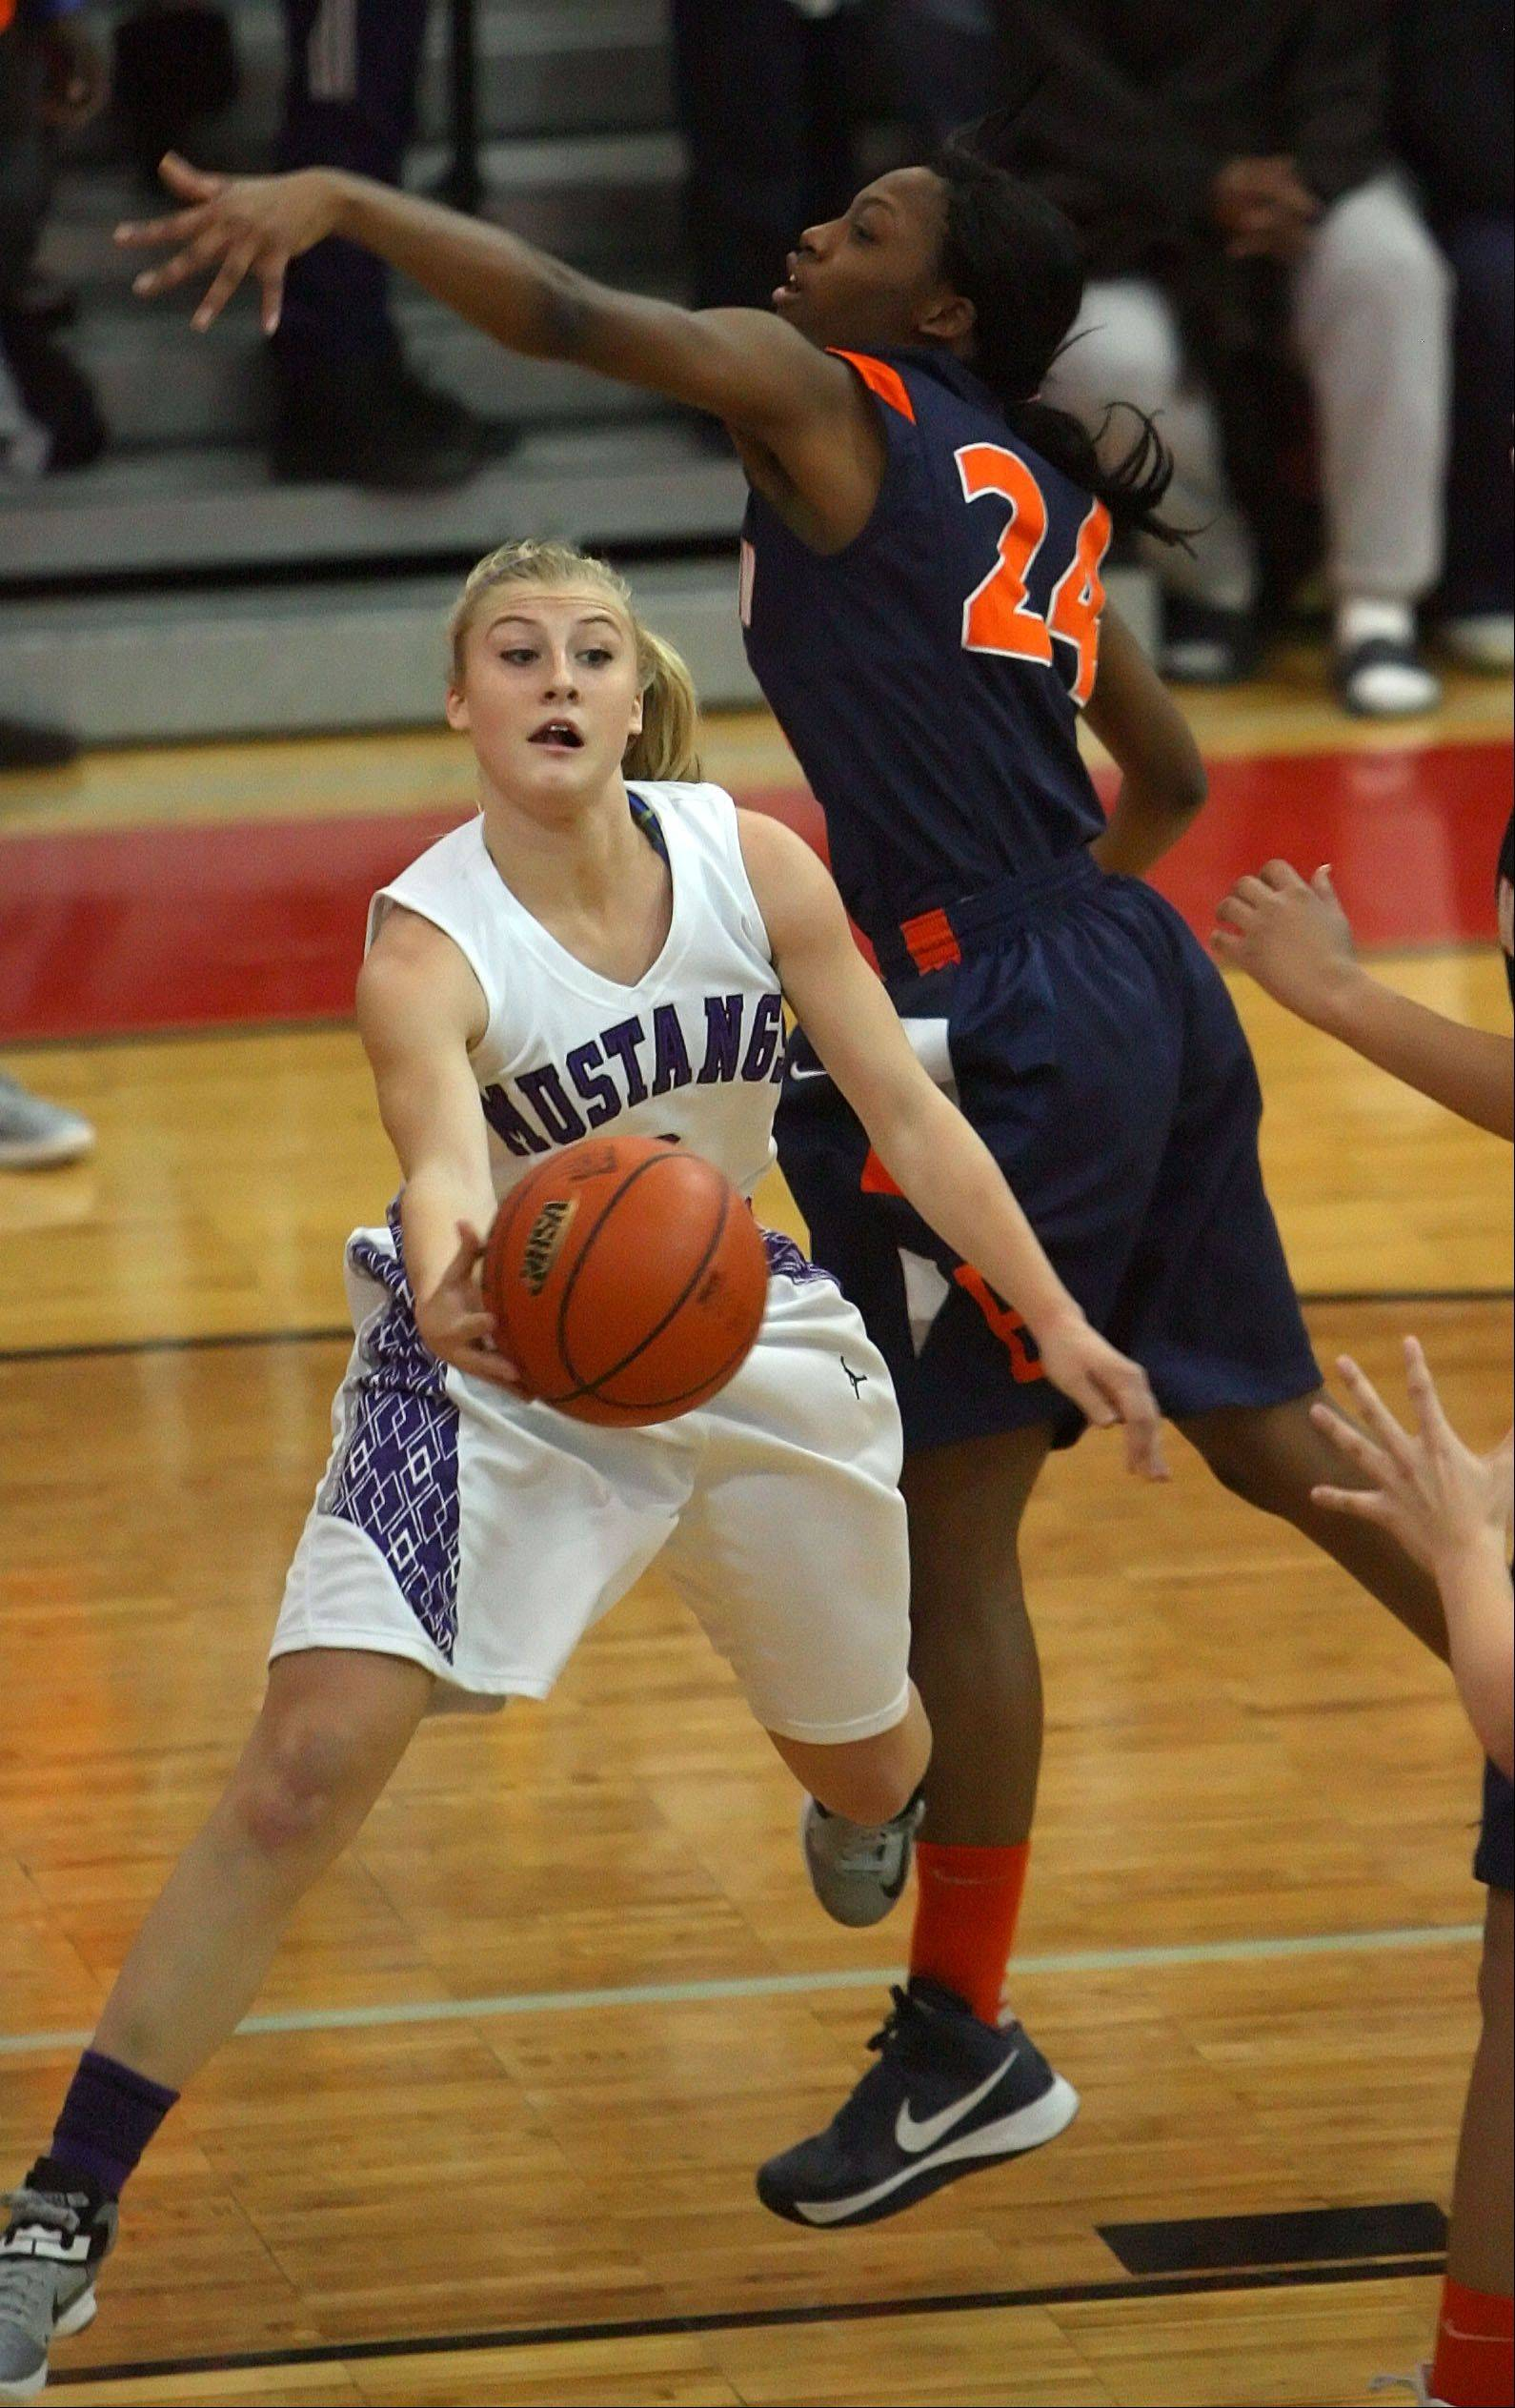 Rolling Meadows' Jackie Kemph drives on Evanston's Sierra Clayborn in Class 4A Niles West supersectional play Monday night in Skokie.